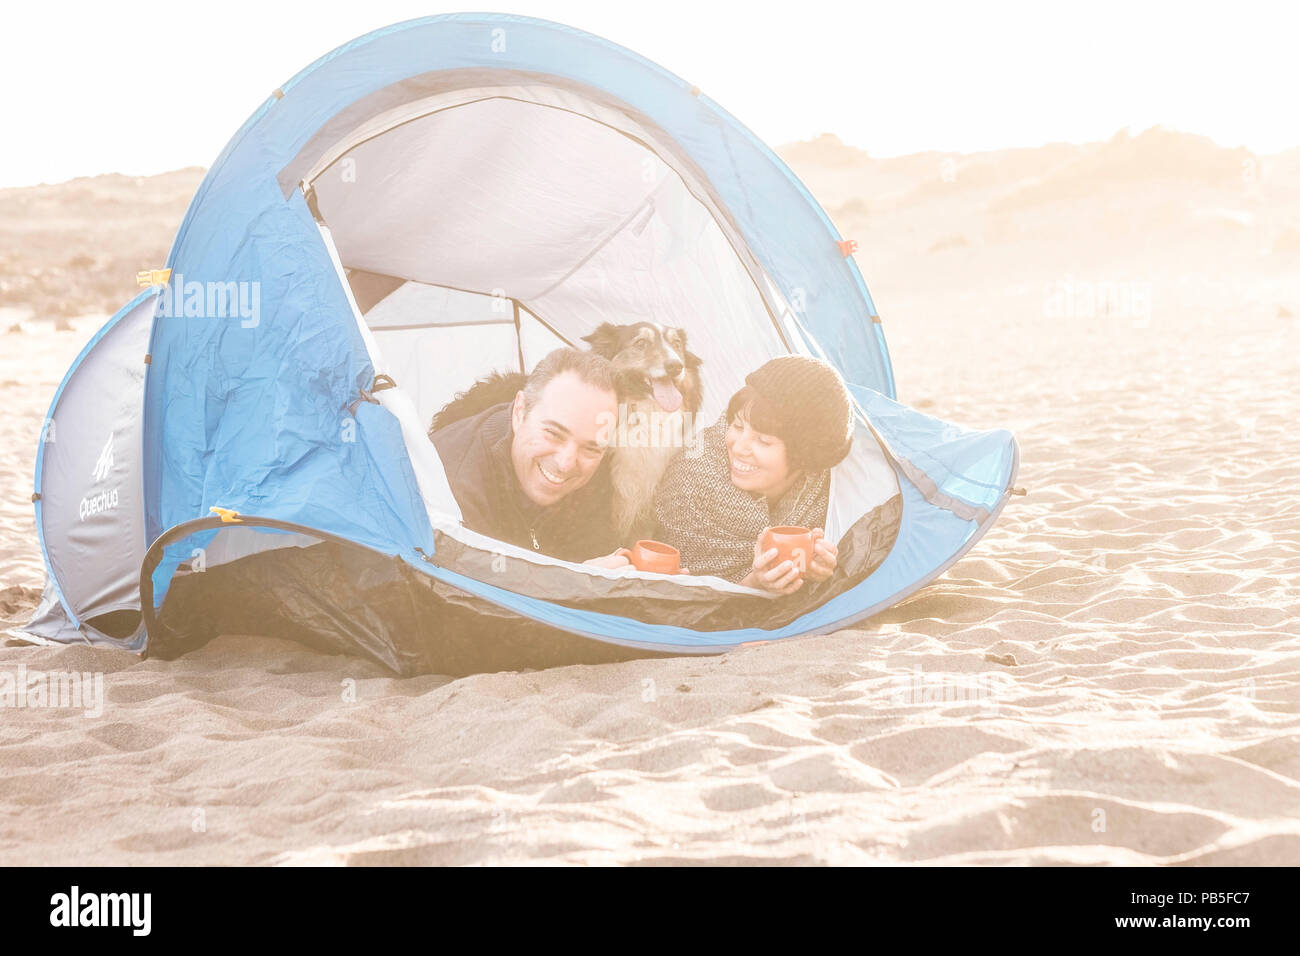 couple looking at the smart phone and have fun inside a tent in free camping on the beach Dog border collie behind them looking at the camera. vintage - Stock Image